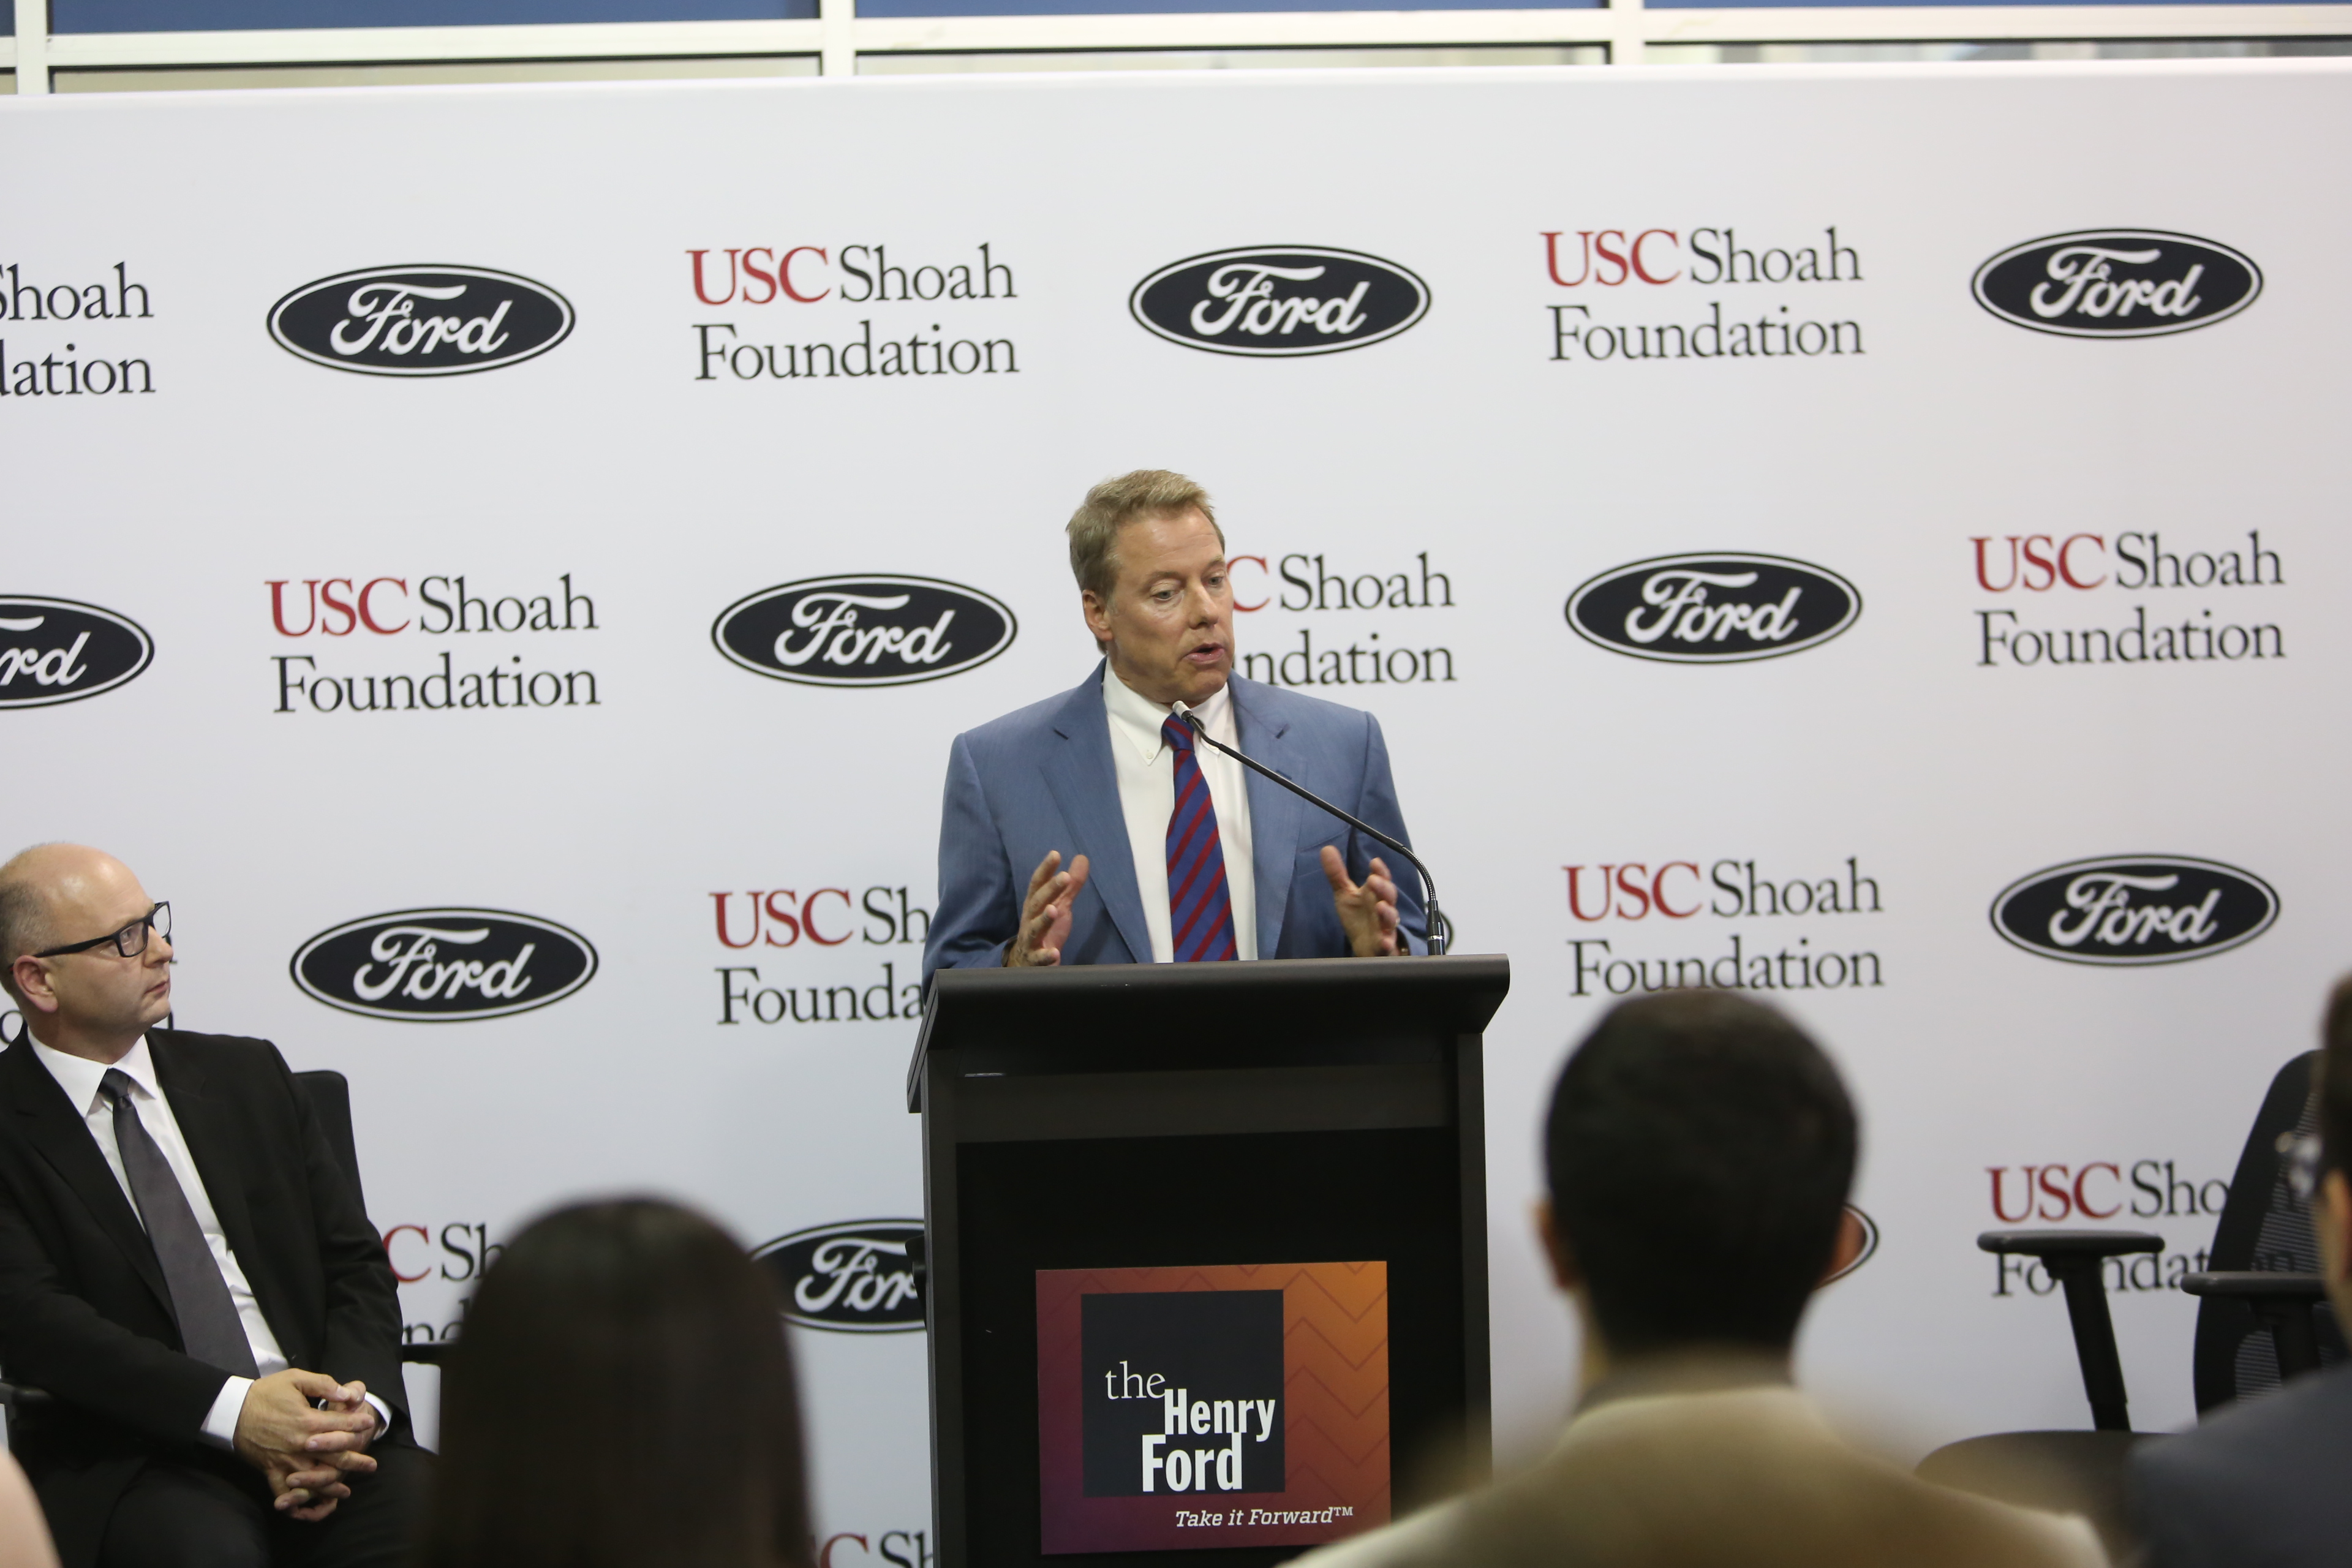 Bill Ford announces Ford's partnership with IWitness Detroit  at a press conference before the gala